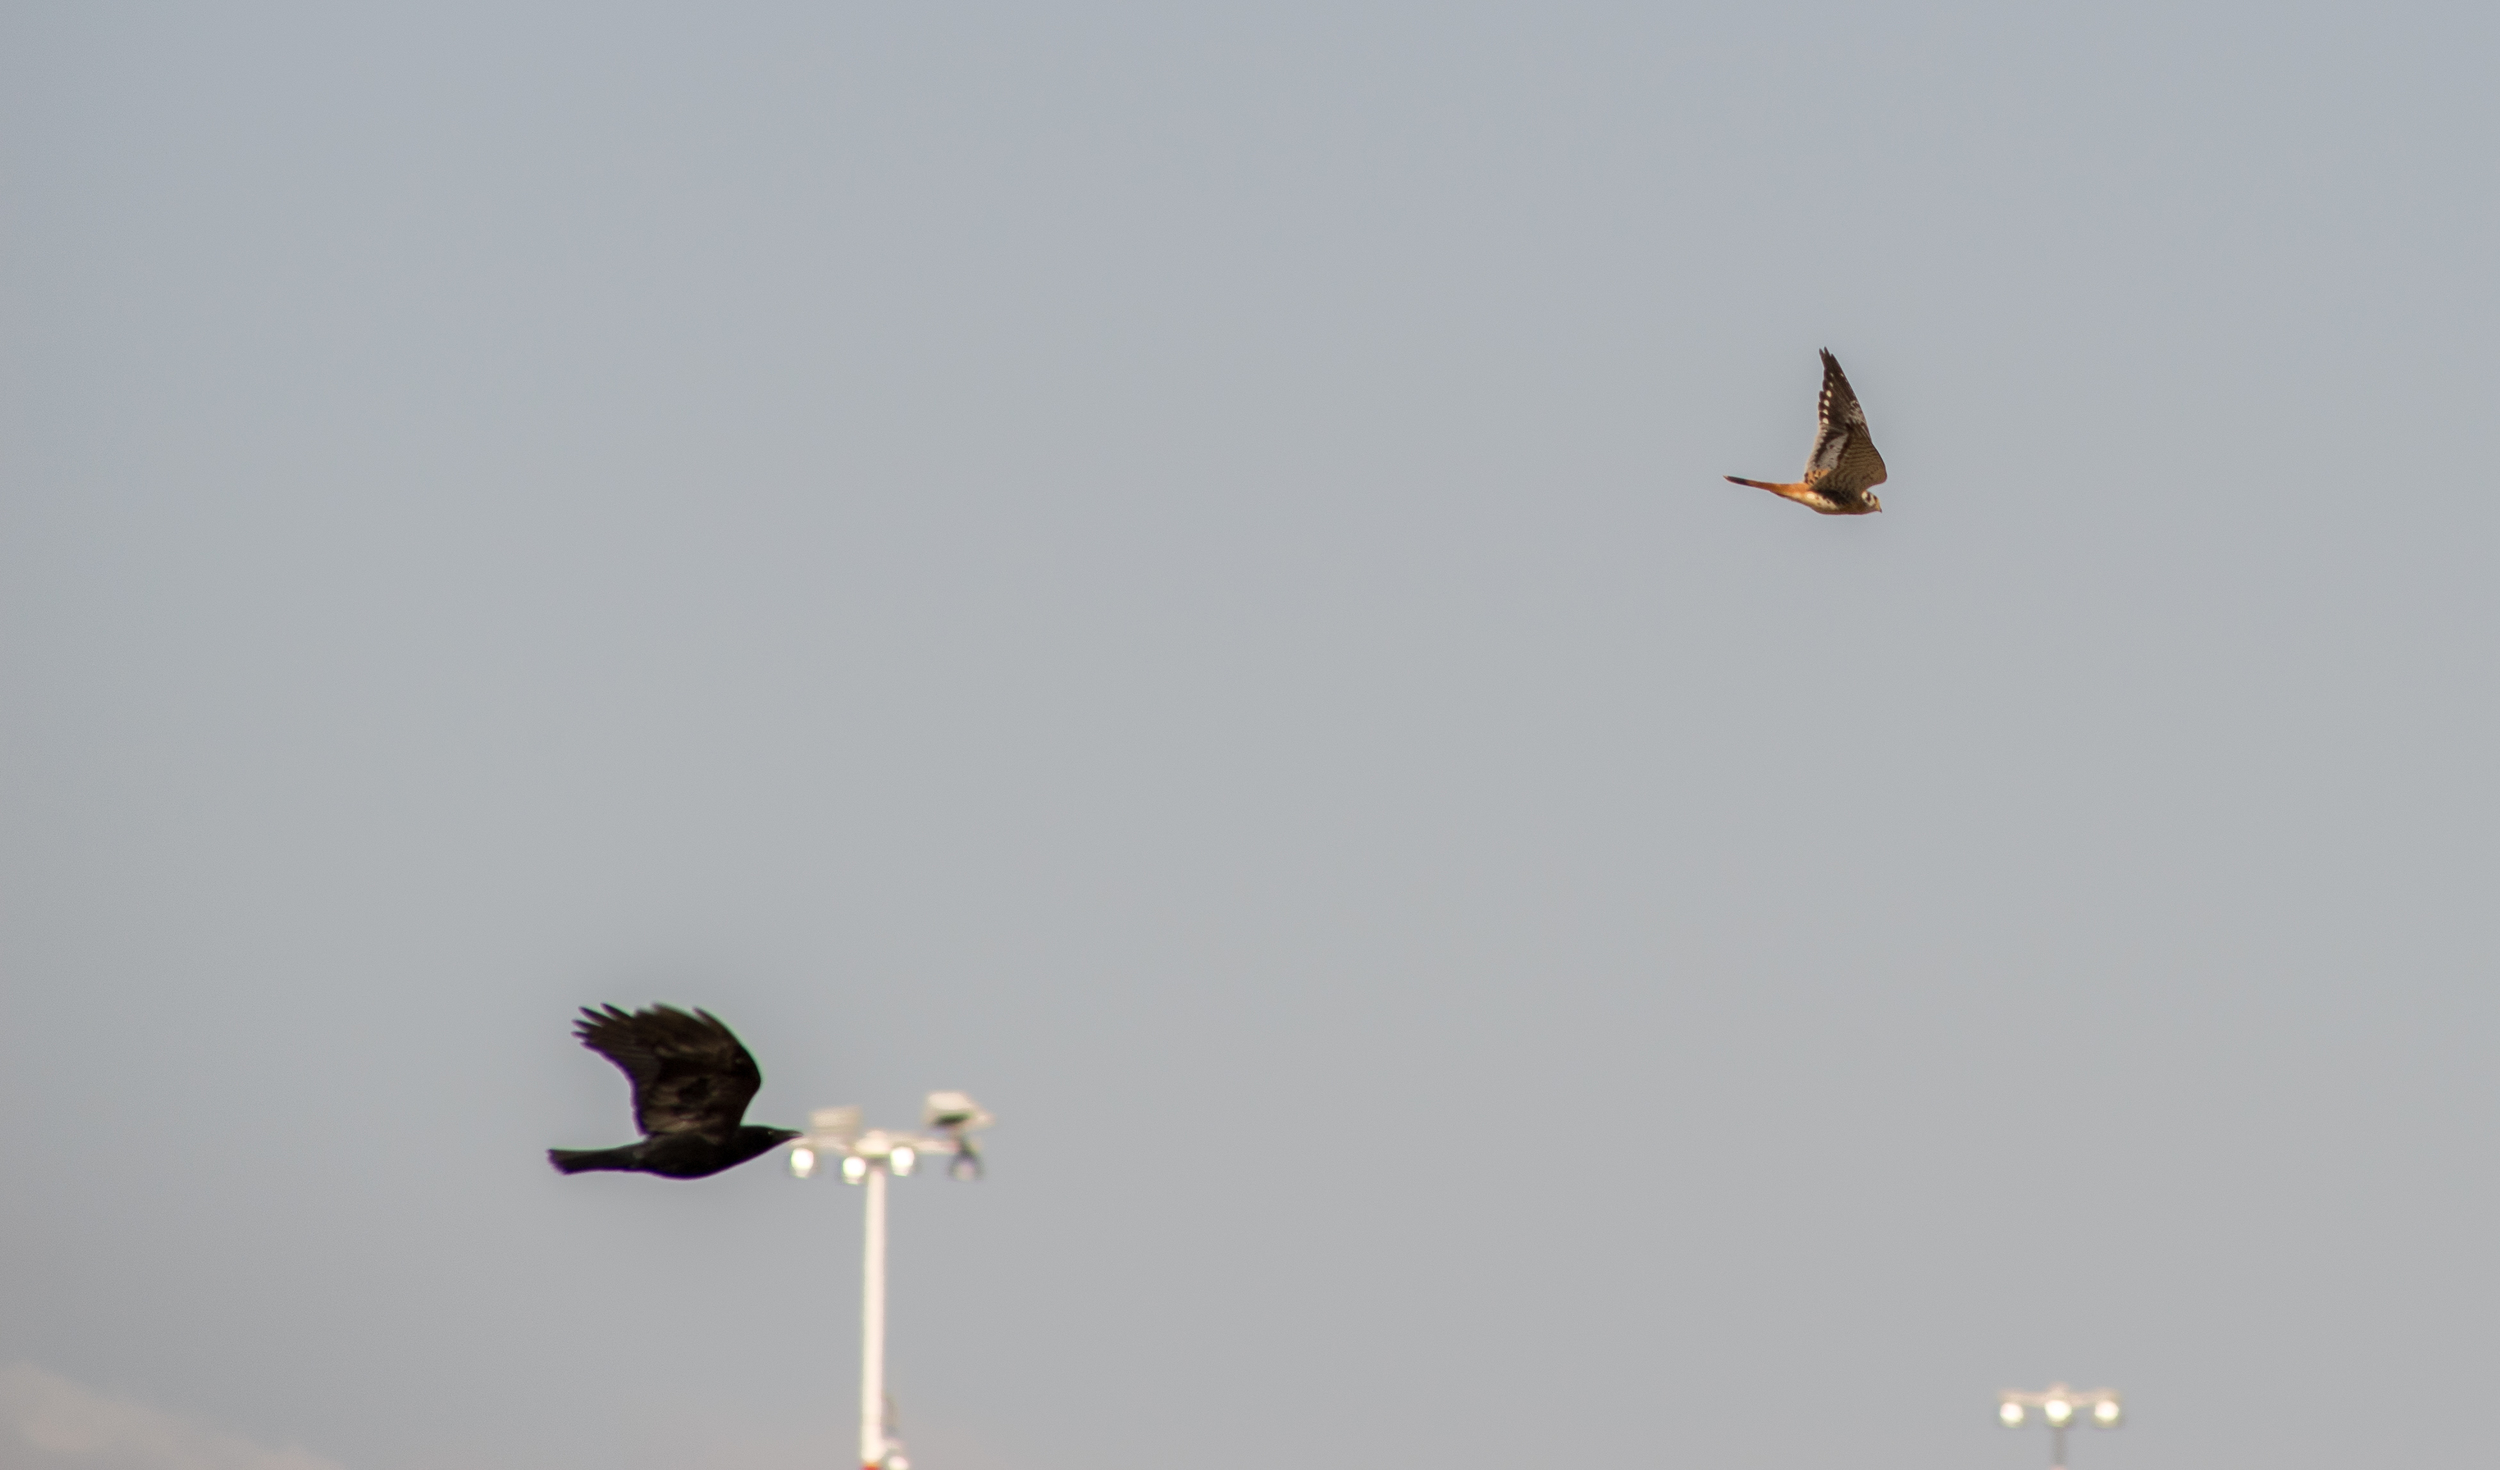 An American Kestrel being harassed by an American Crow at Middle Harbor Shoreline Park. (Photo: Tony Iwane)